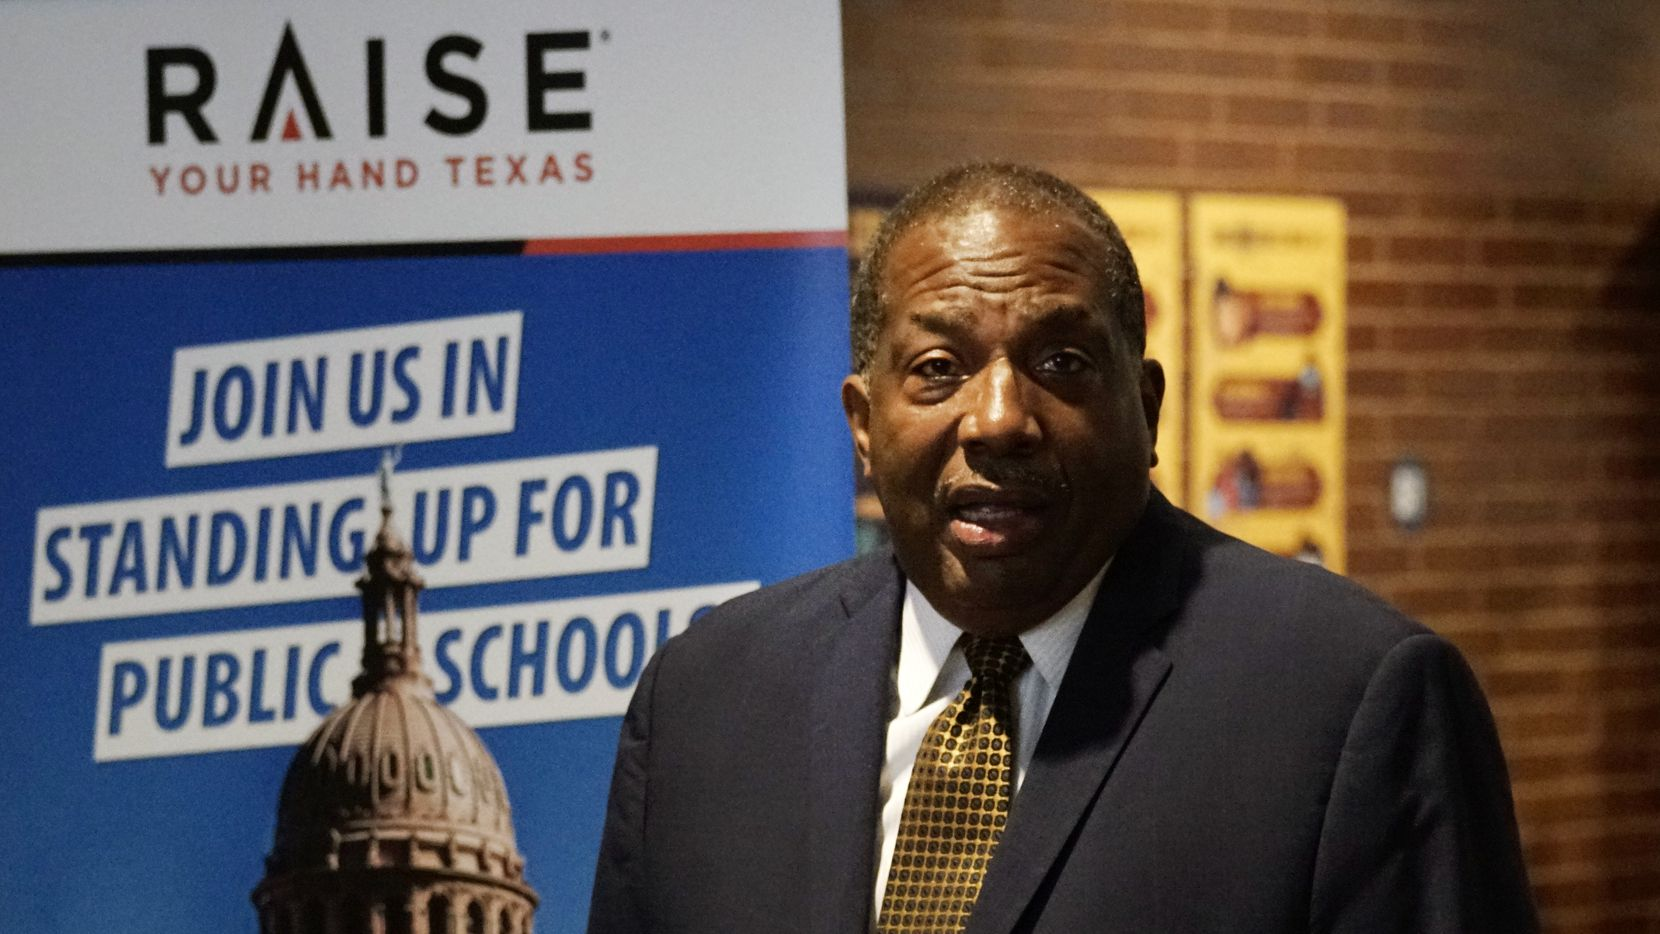 State Sen. Royce West, shown speaking at a press conference about school funding in Dallas last month, was honored by the Texas House on Monday. It voted to rename a priority bill, which would streamline removal of racist restrictions from real-estate deeds, in honor of the veteran Dallas Democrat.